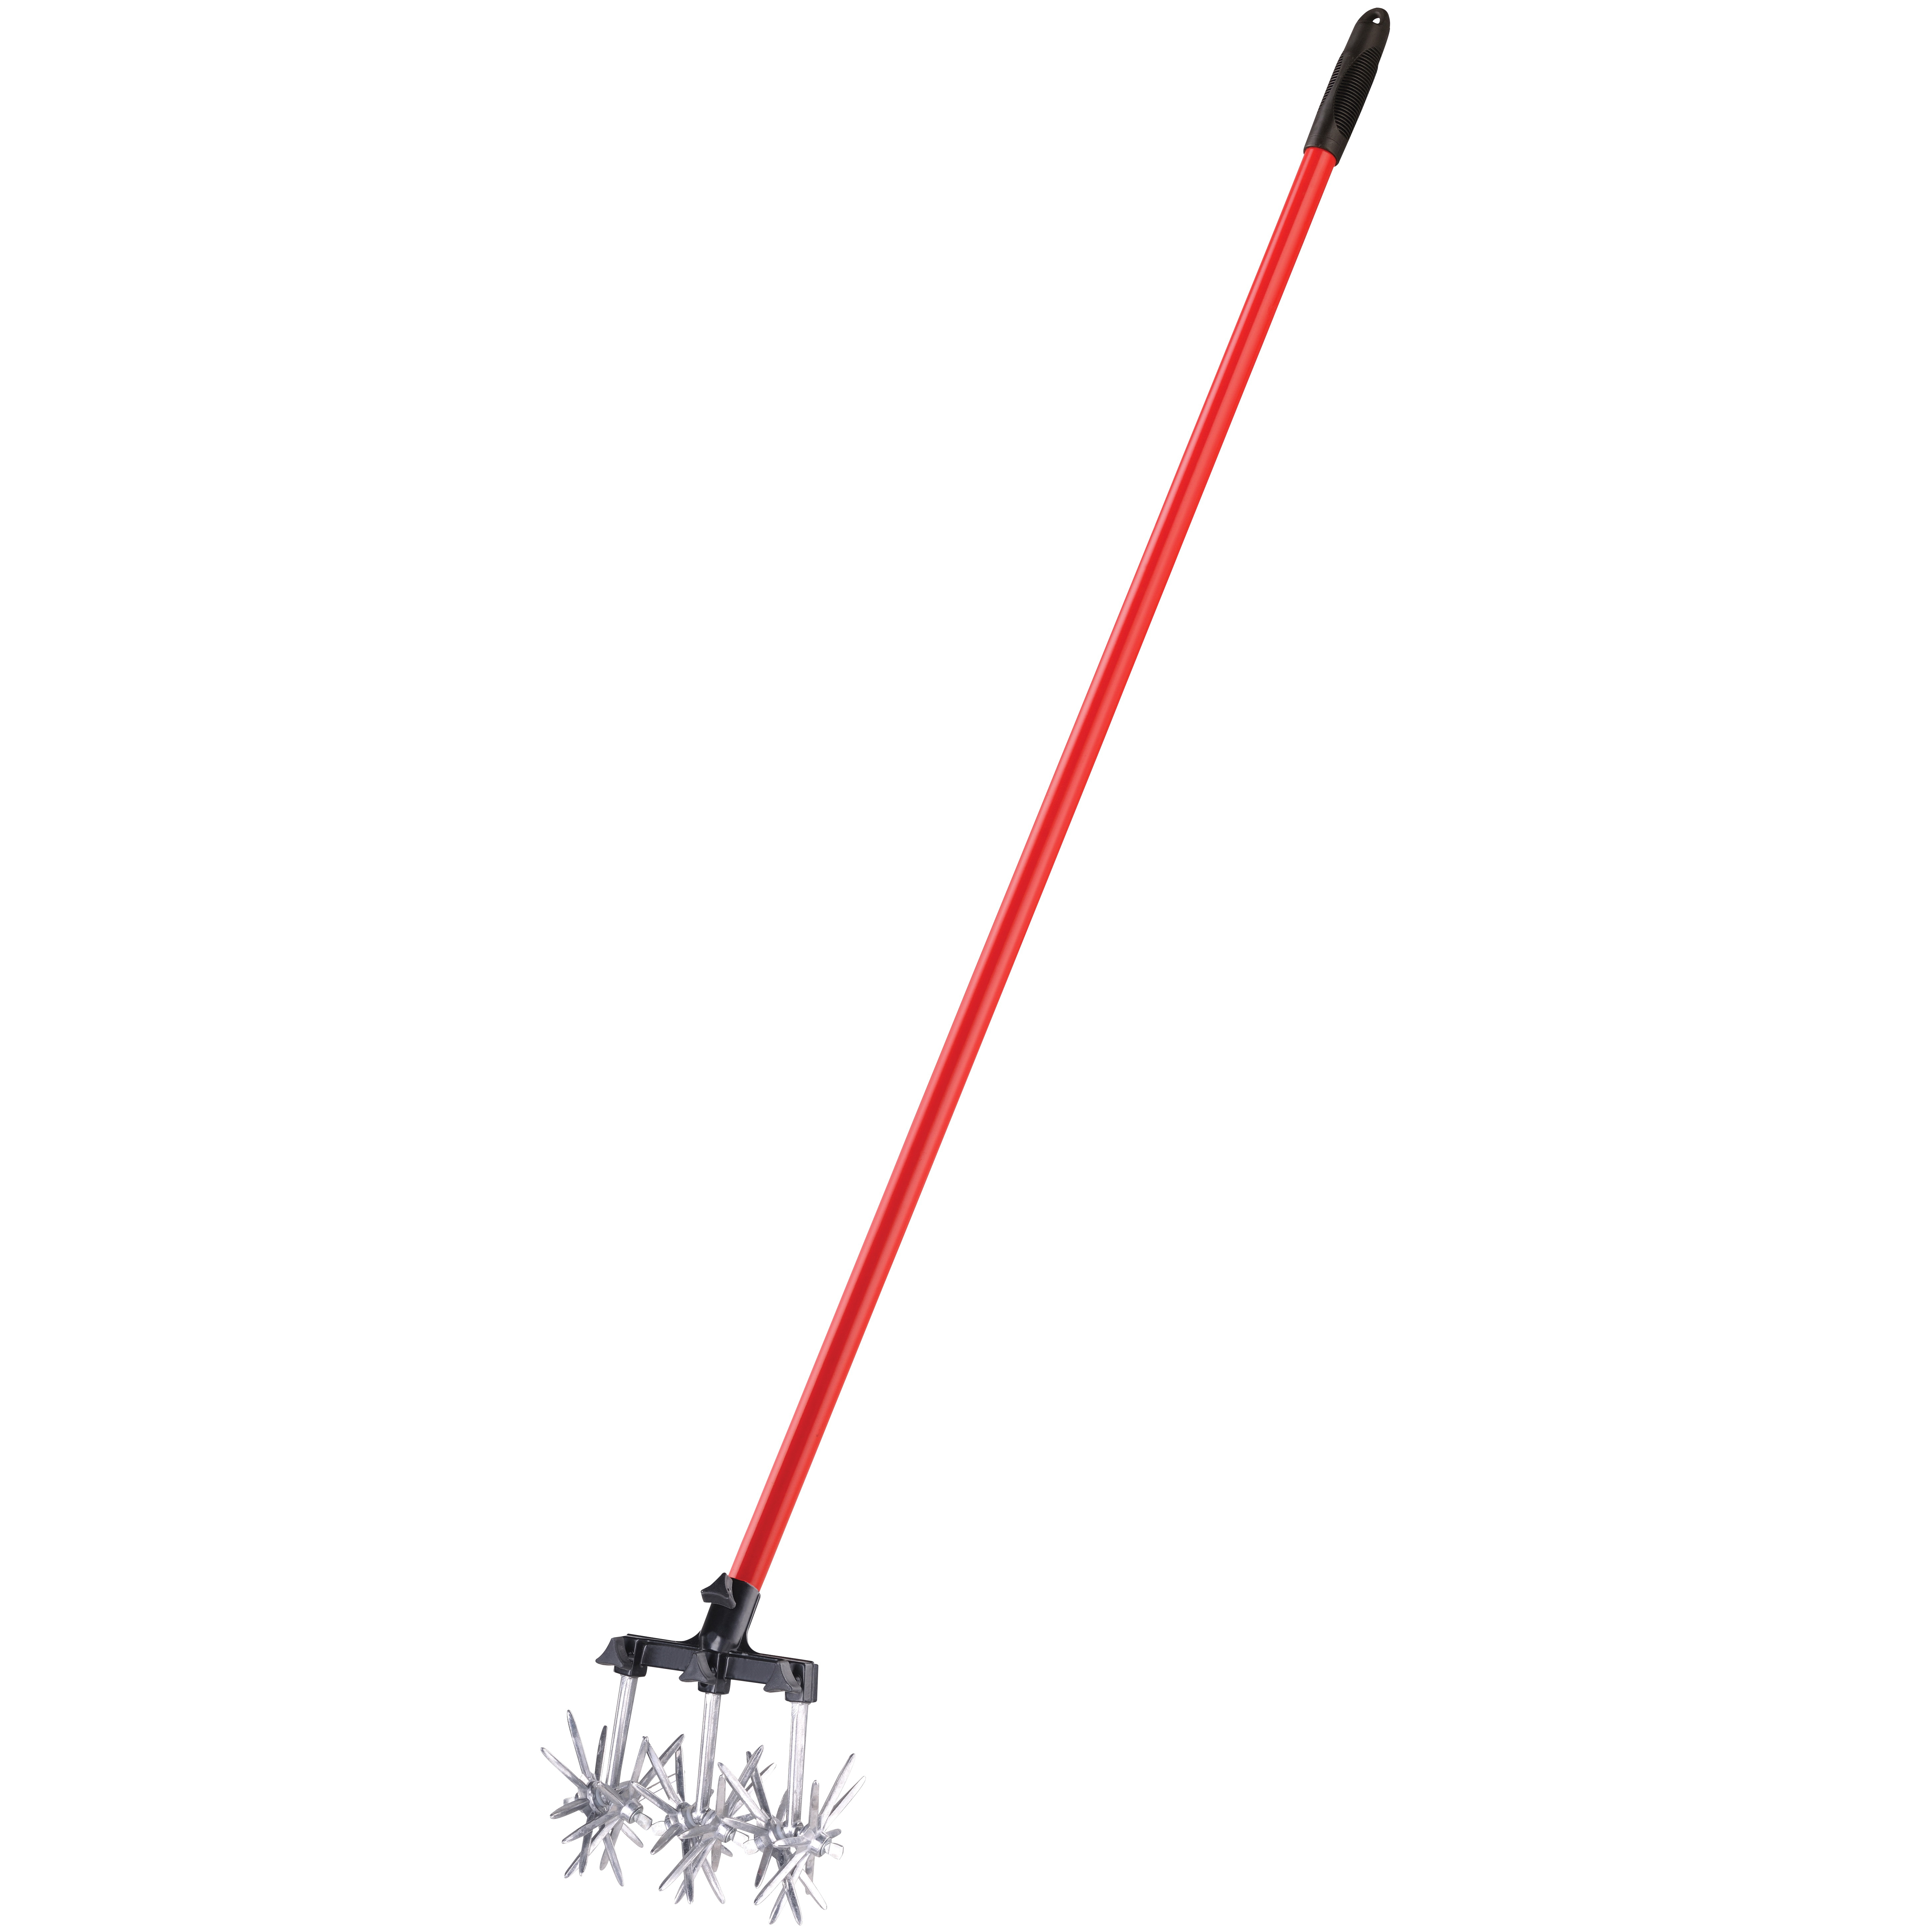 Picture of Landscapers Select 980013L Garden Cultivator, 8 in W, 48 in L, 6 in L Tine, Plastic Handle